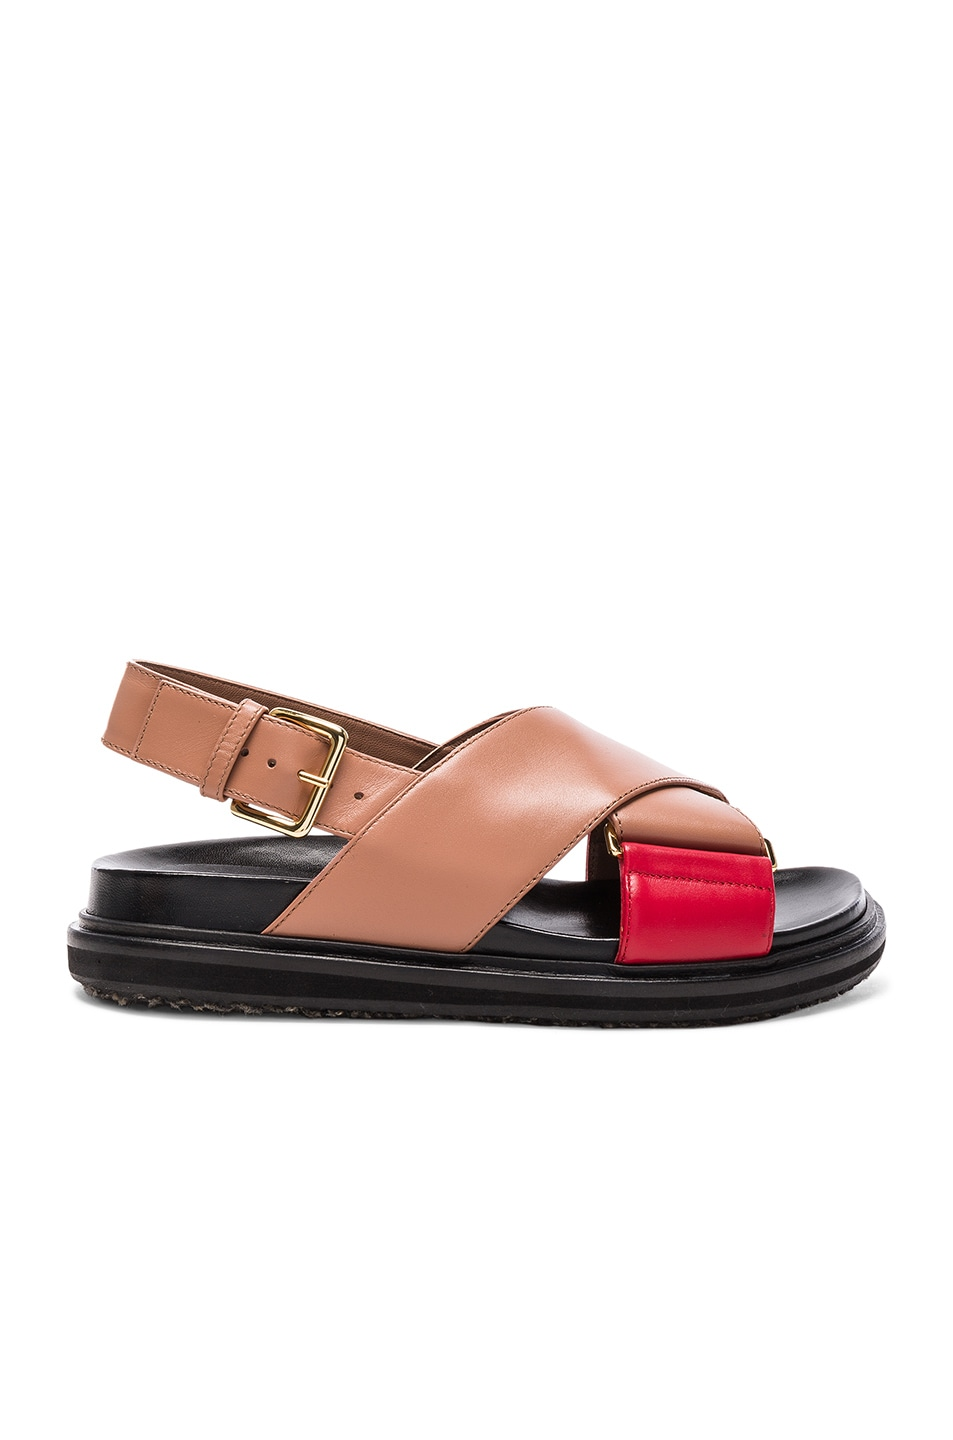 Image 1 of Marni Leather Fussbett Sandals in Cameo & Indian Red